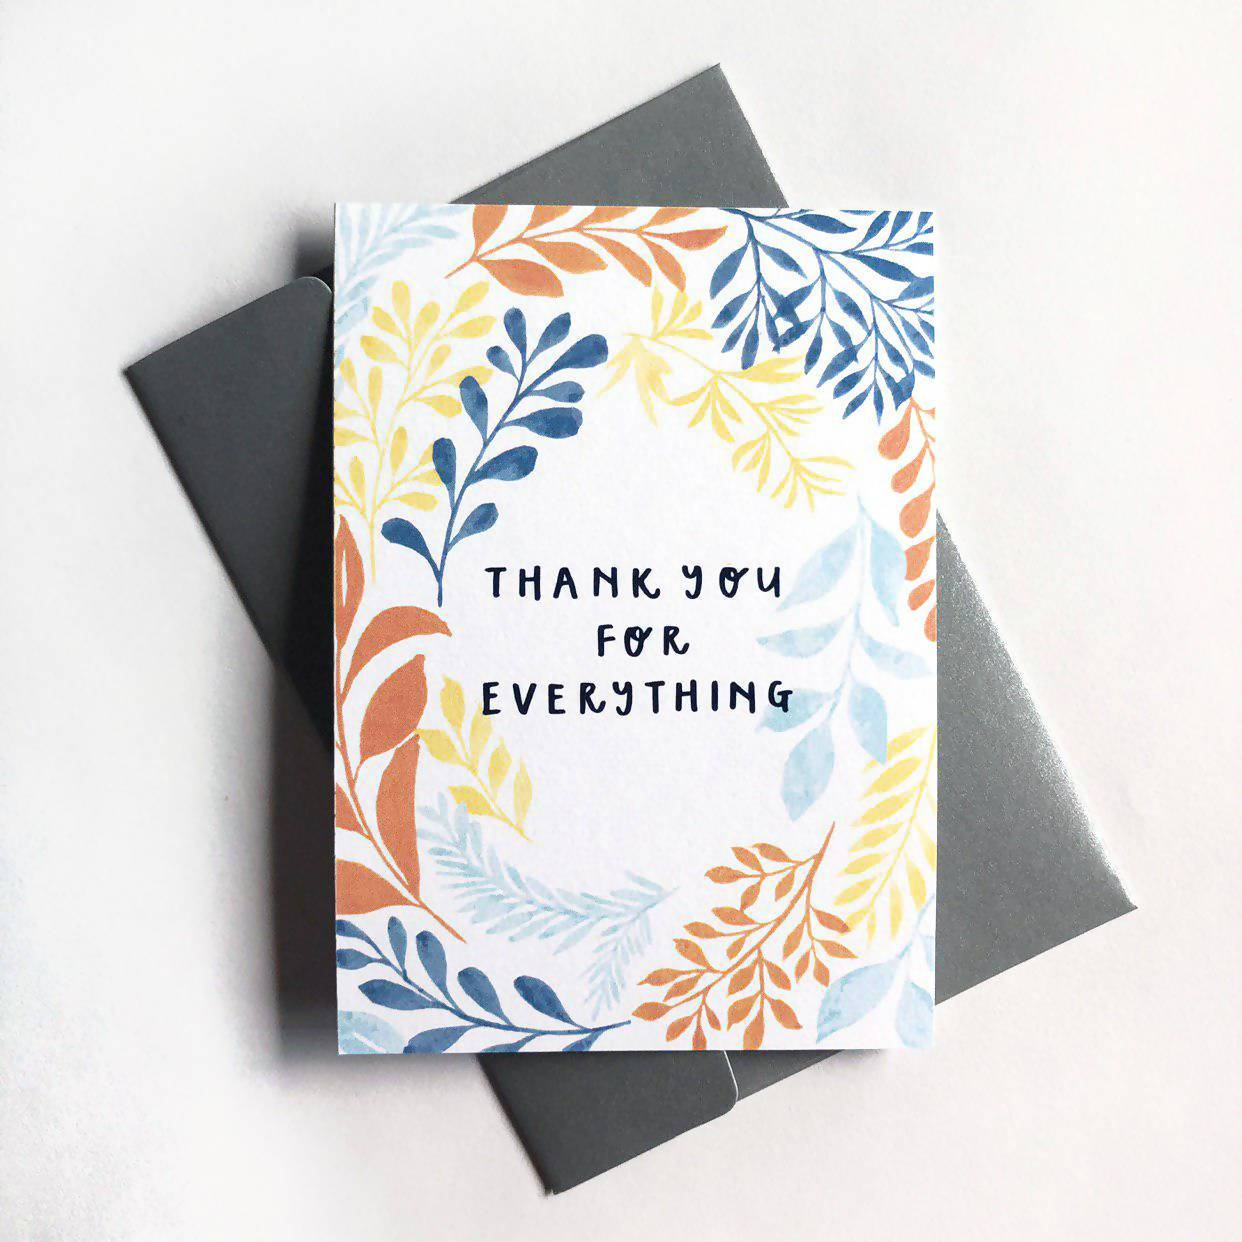 Thank You For Everything | Greeting Card - Thank You Cards - Papercranes Design - Naiise